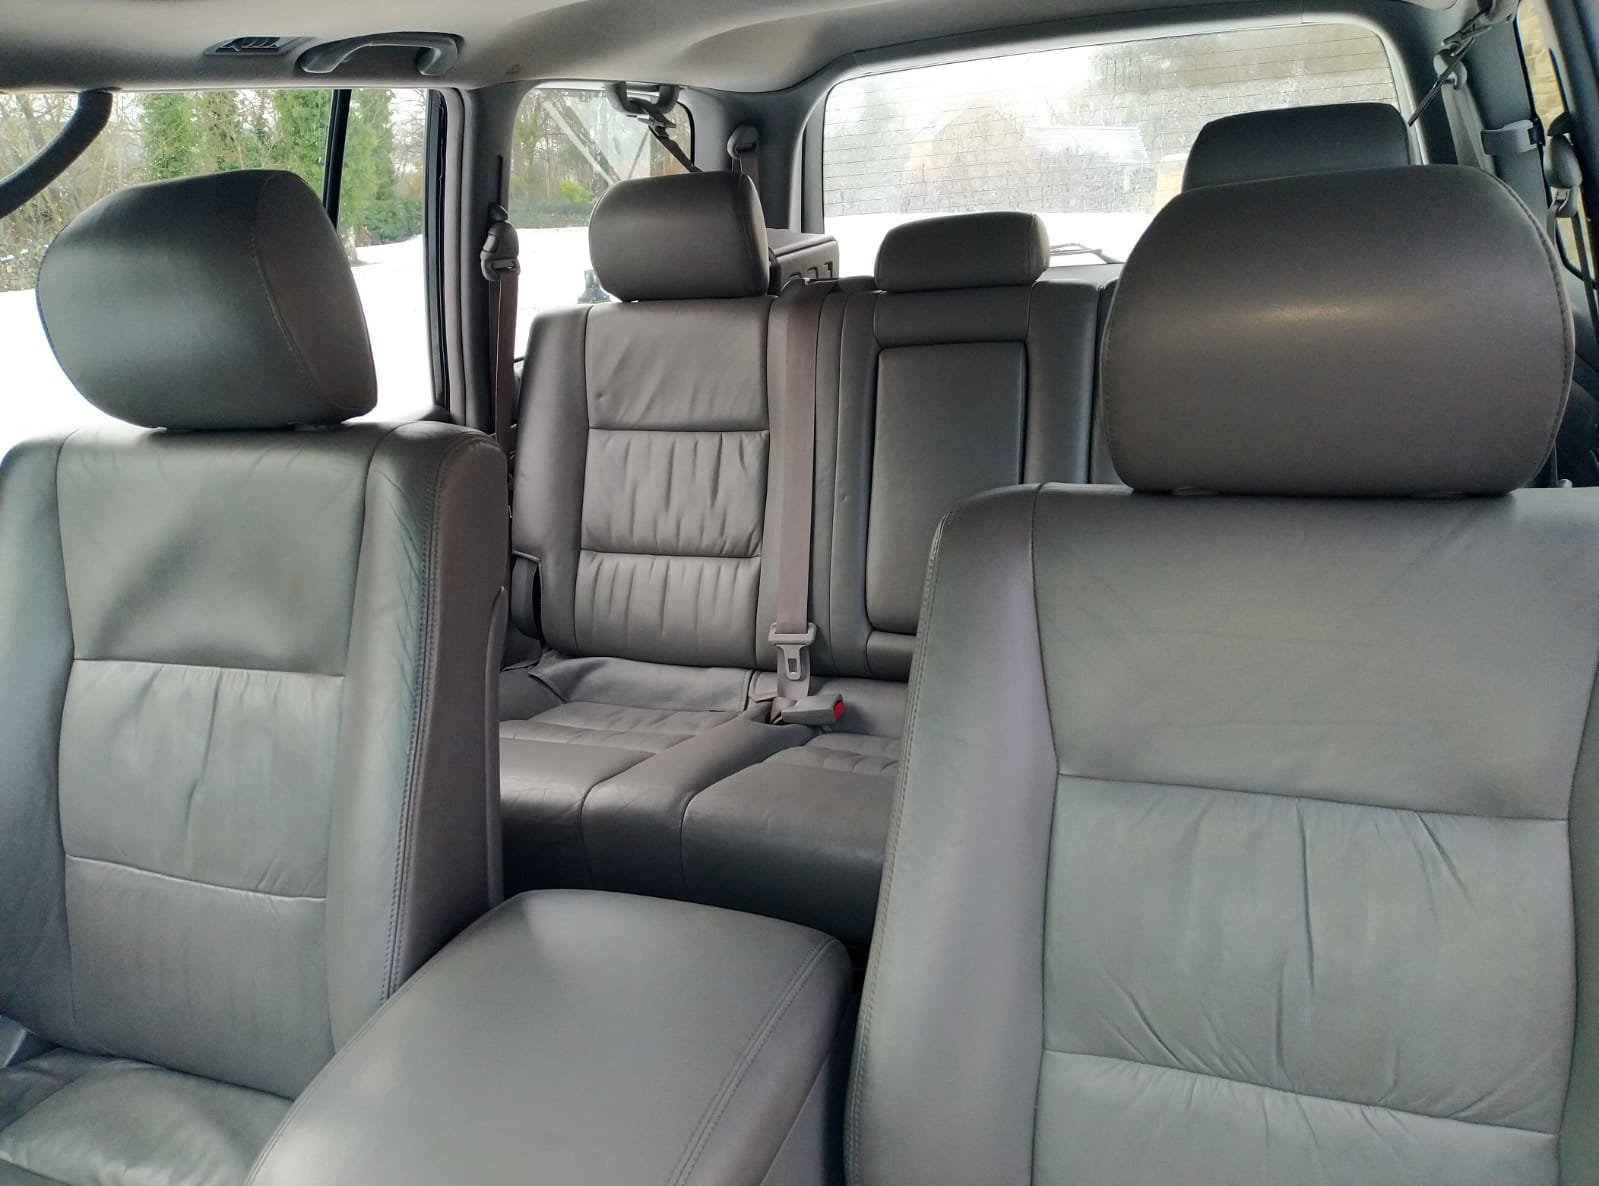 2004 Toyota Land cruiser Amazon TD 4.2 Auto For Sale (picture 9 of 12)